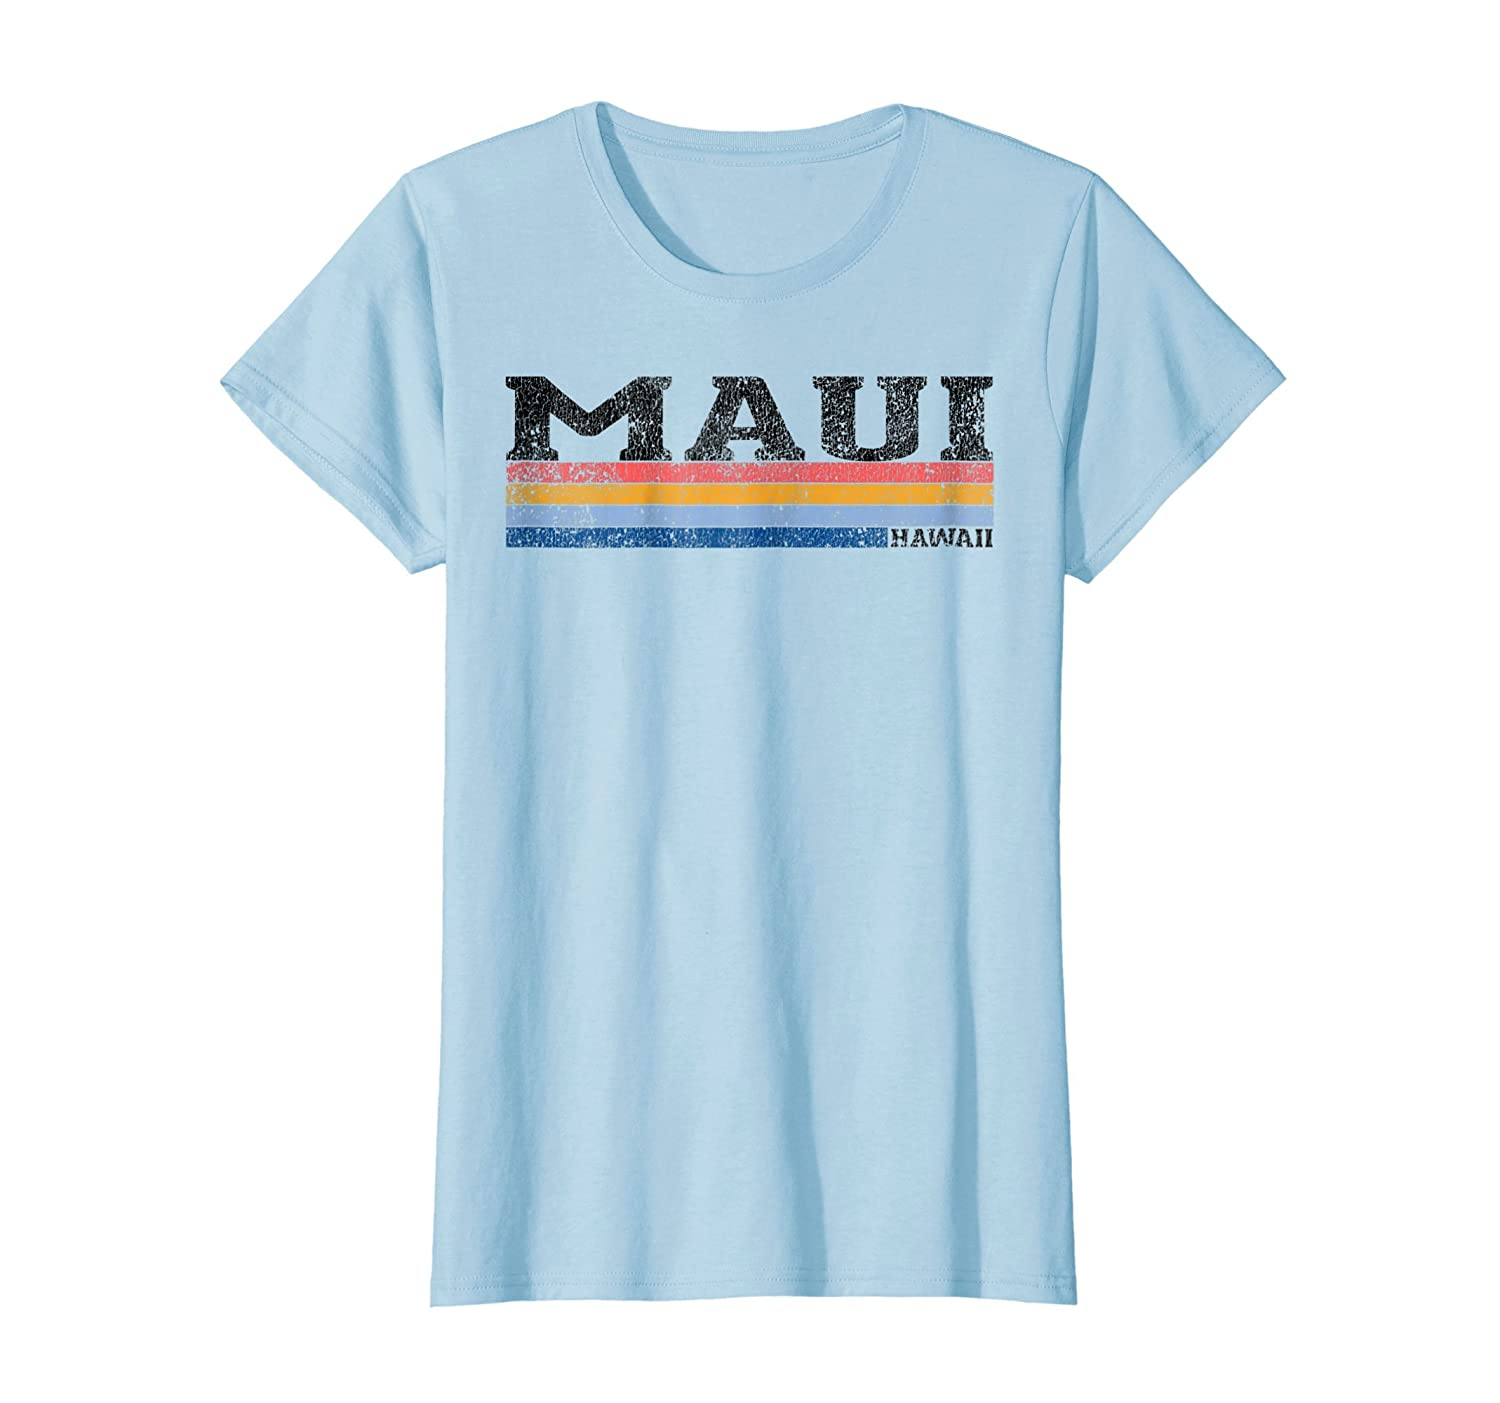 Vintage 1980s Style Maui Hawaii T-Shirt-Newstyleth